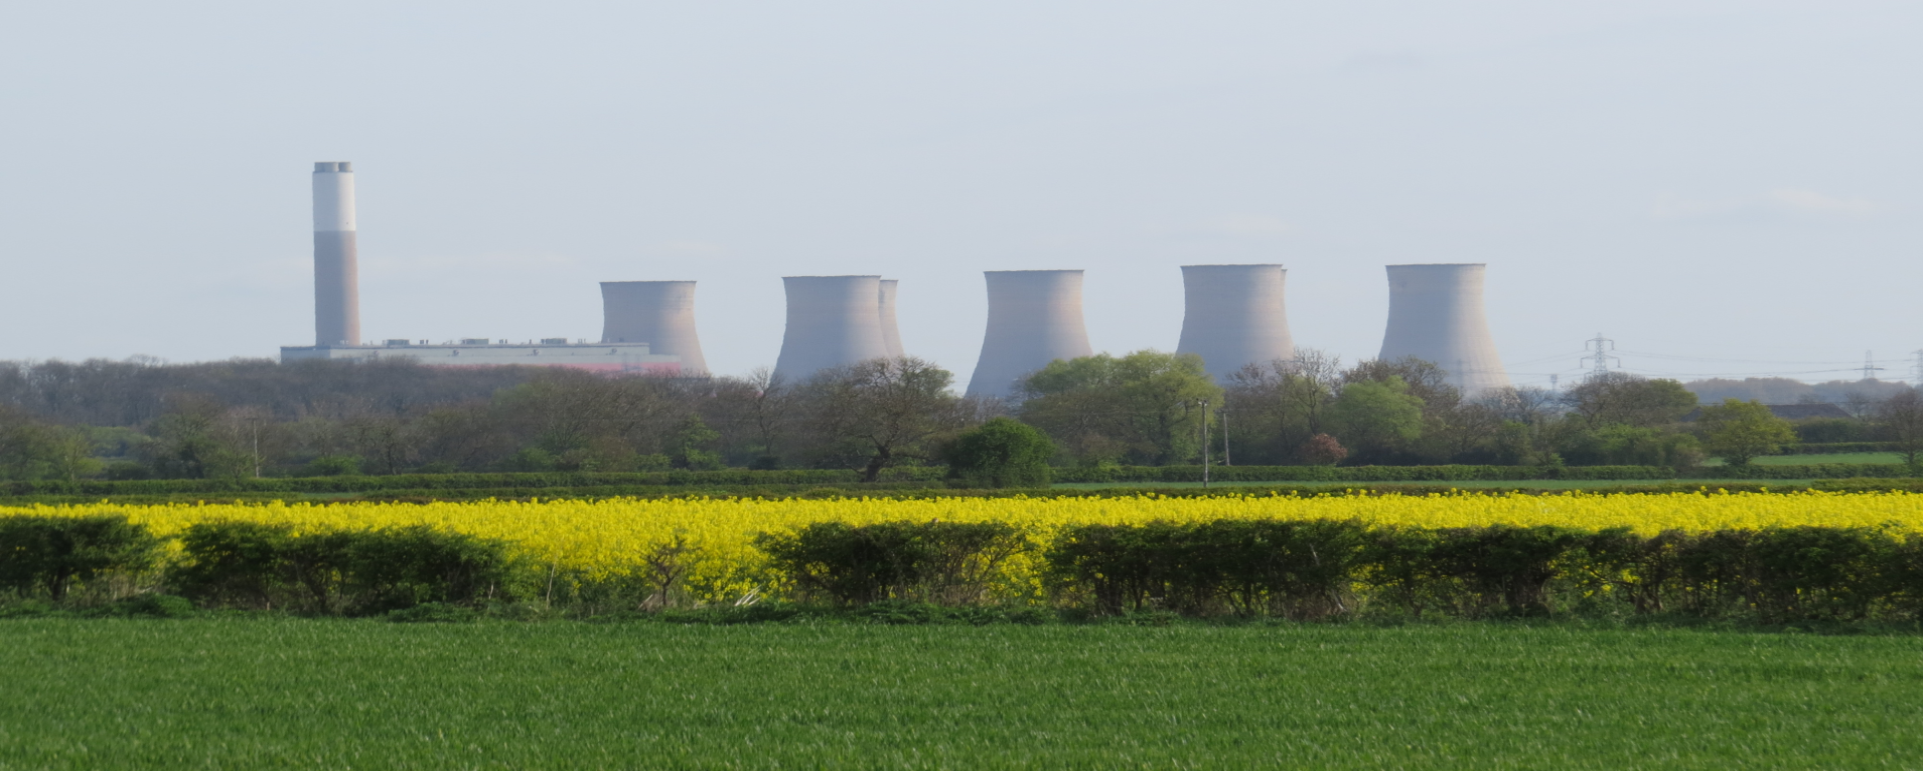 Cottam Power Station beyond field of flowering rape